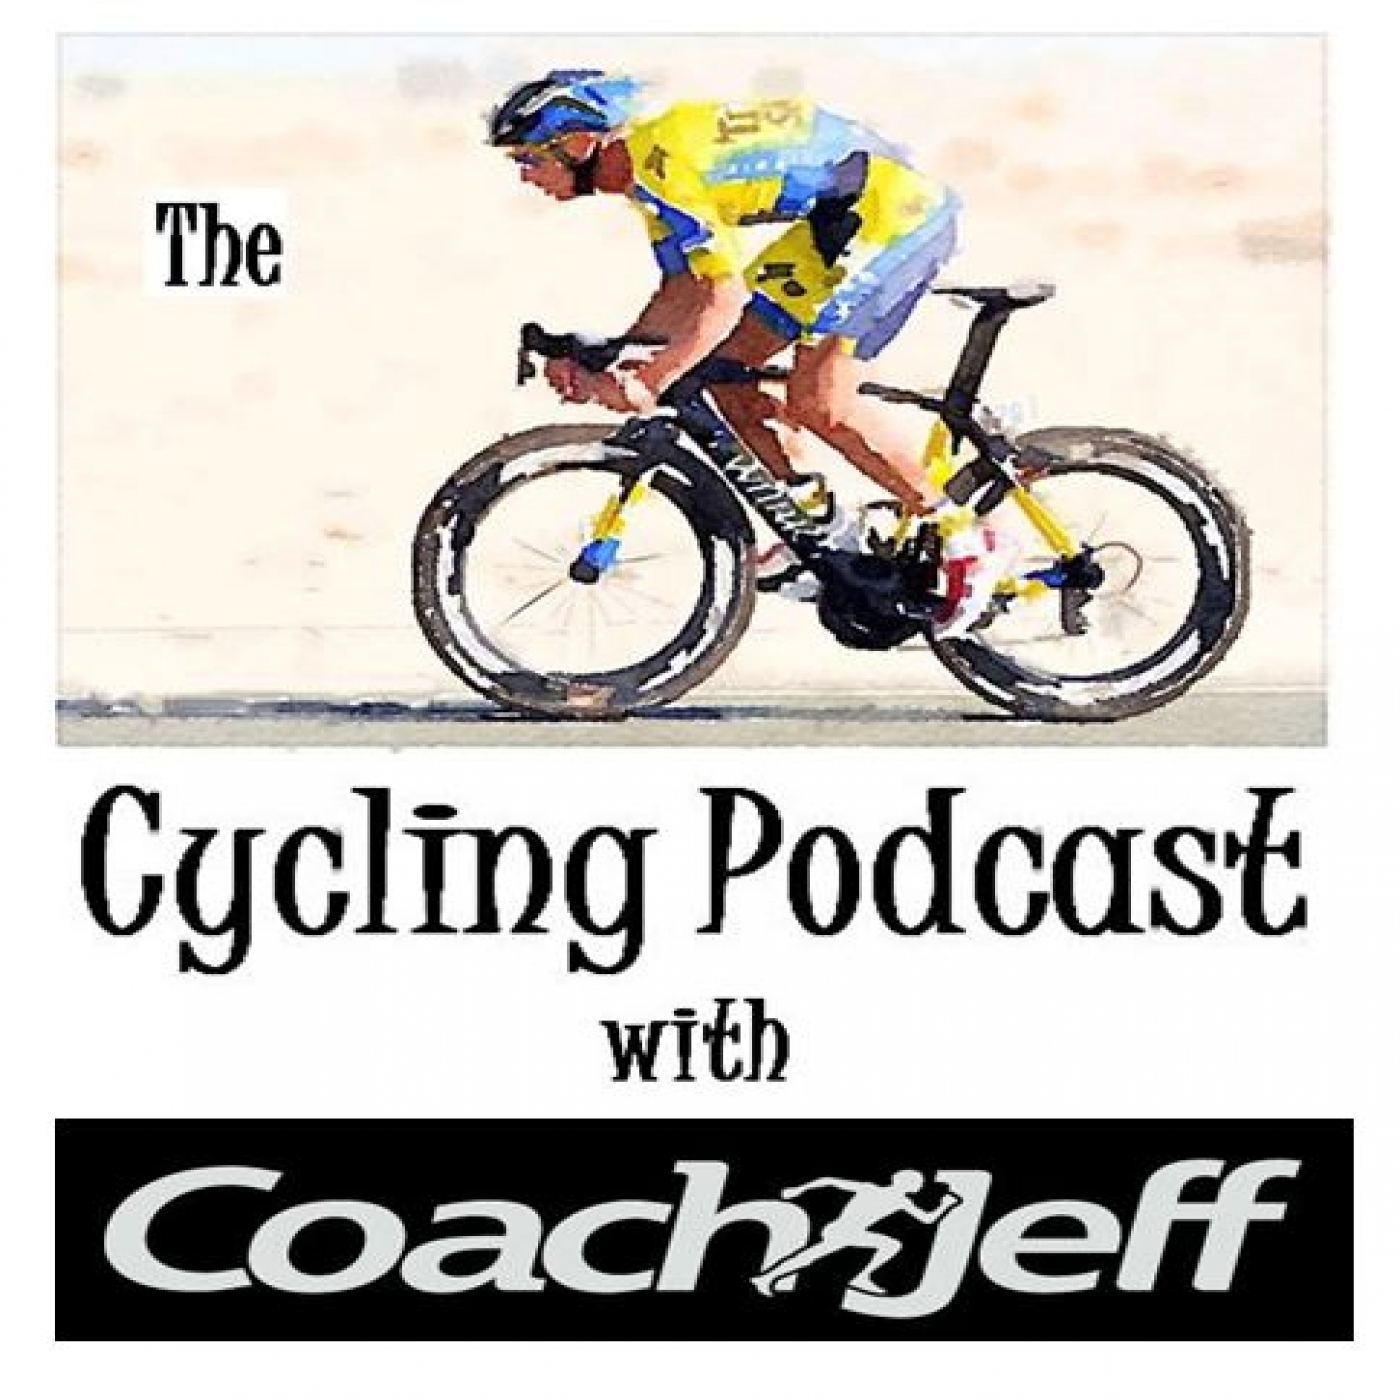 The Cycling Podcast with Coach Jeff